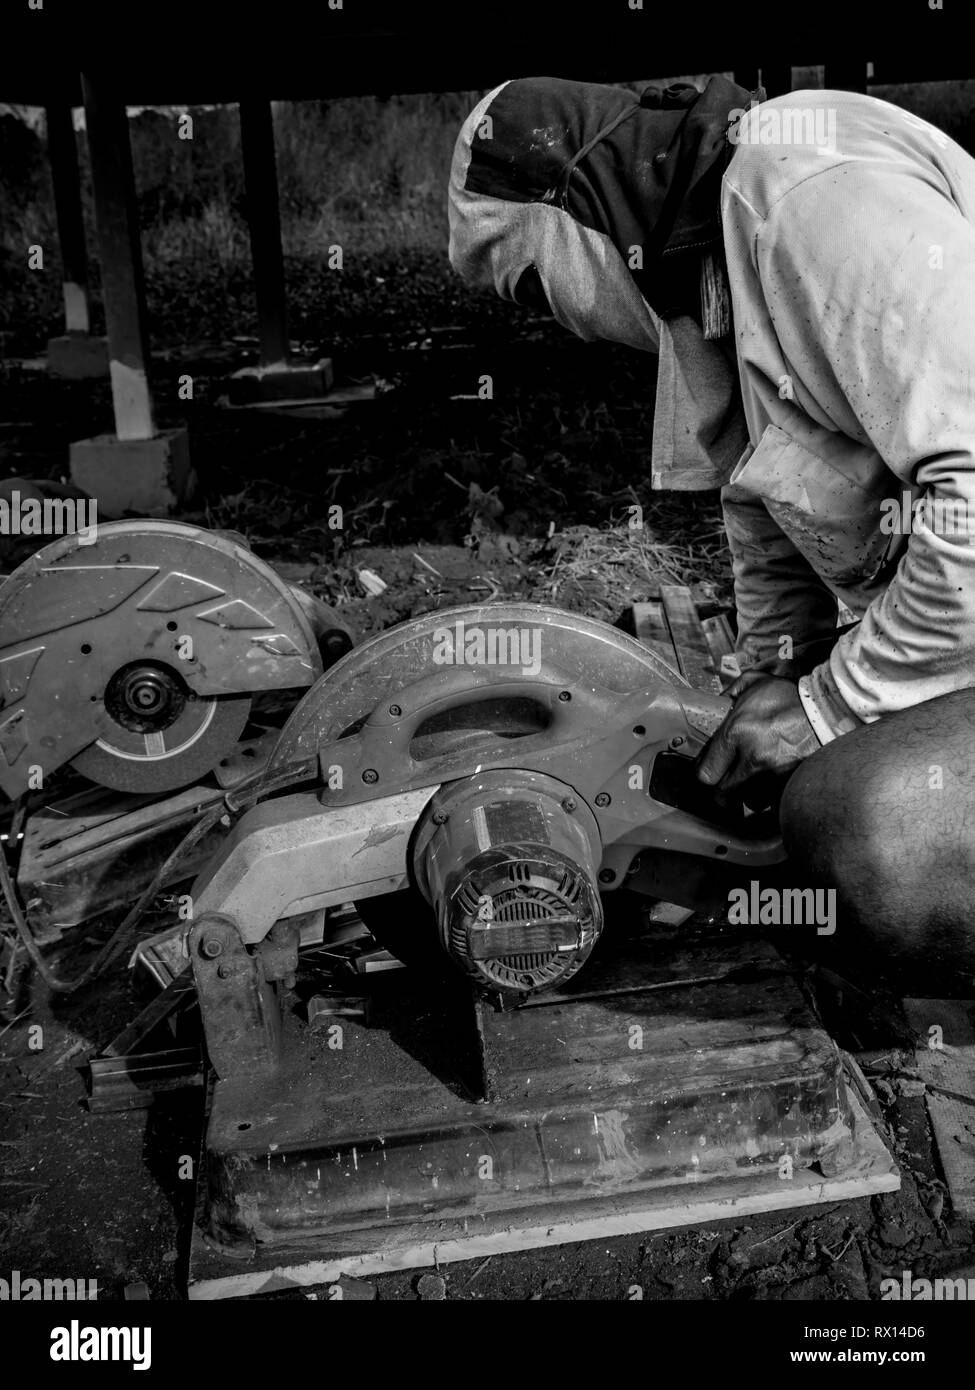 Male worker cutting steel with a cutting machine - Stock Image